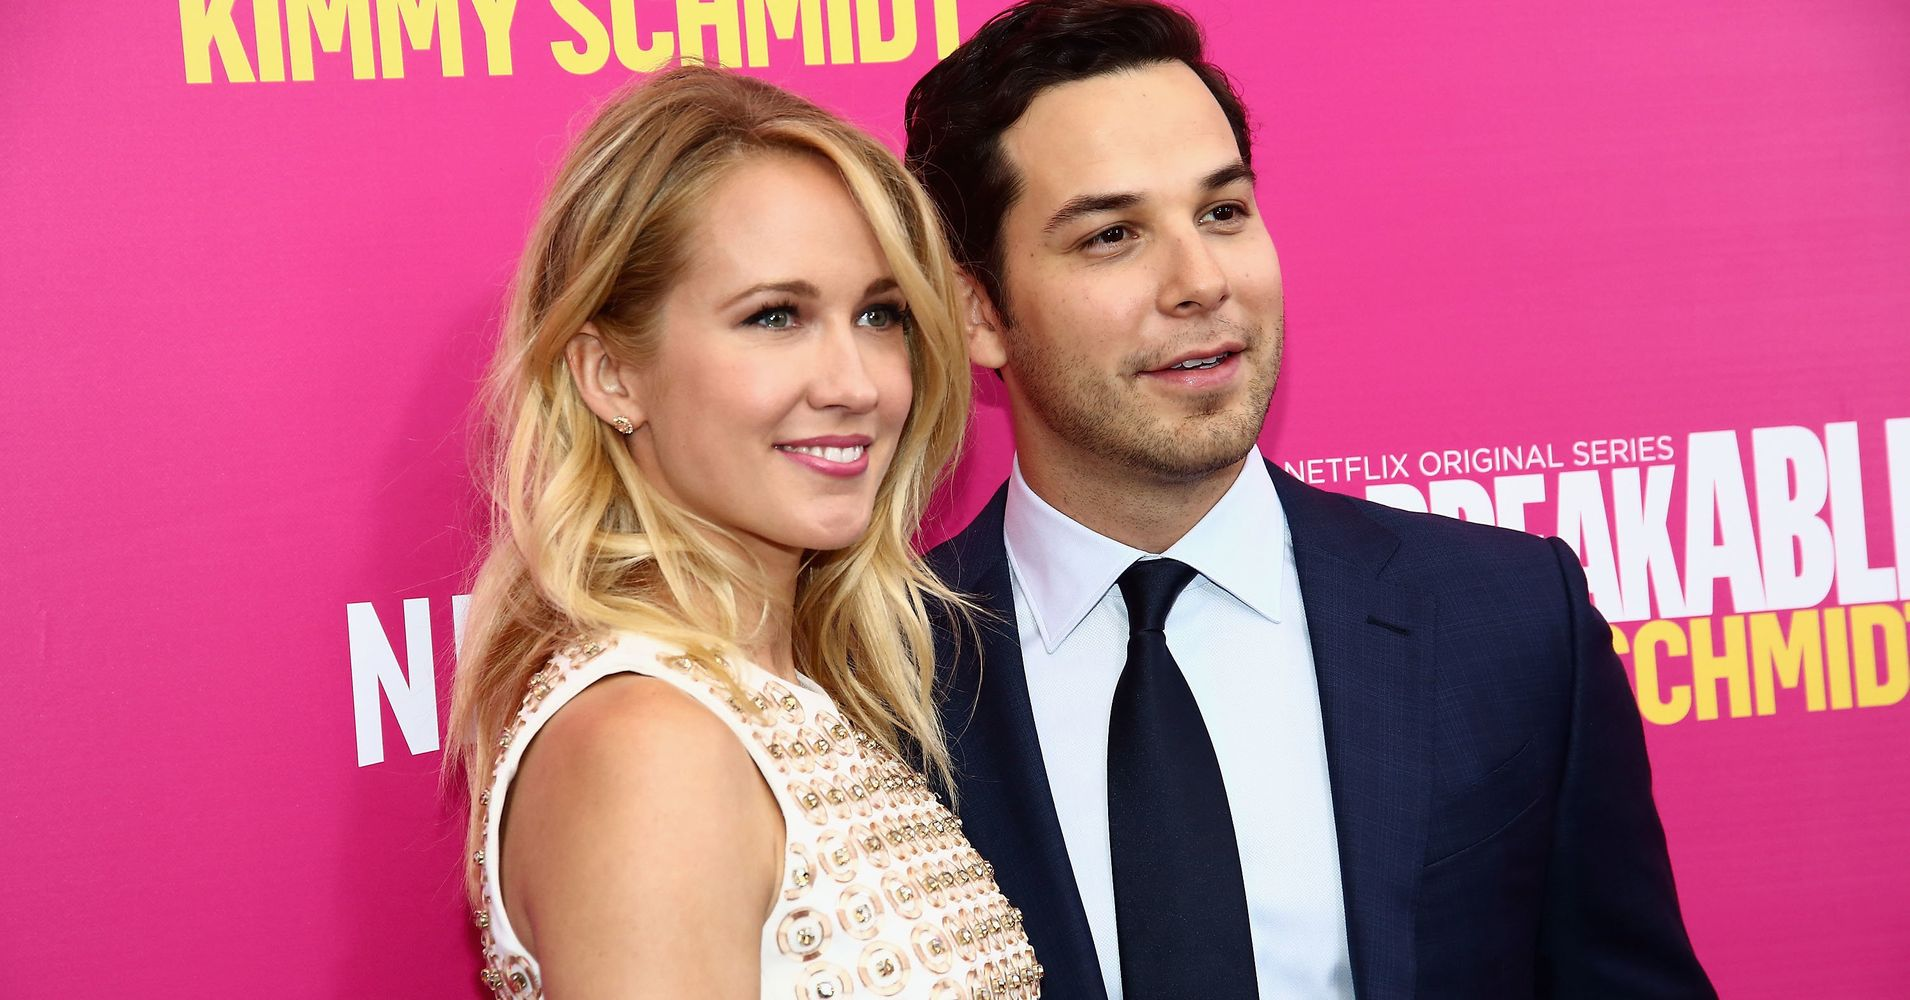 'Pitch Perfect' Co-Stars Anna Camp And Skylar Astin Tie